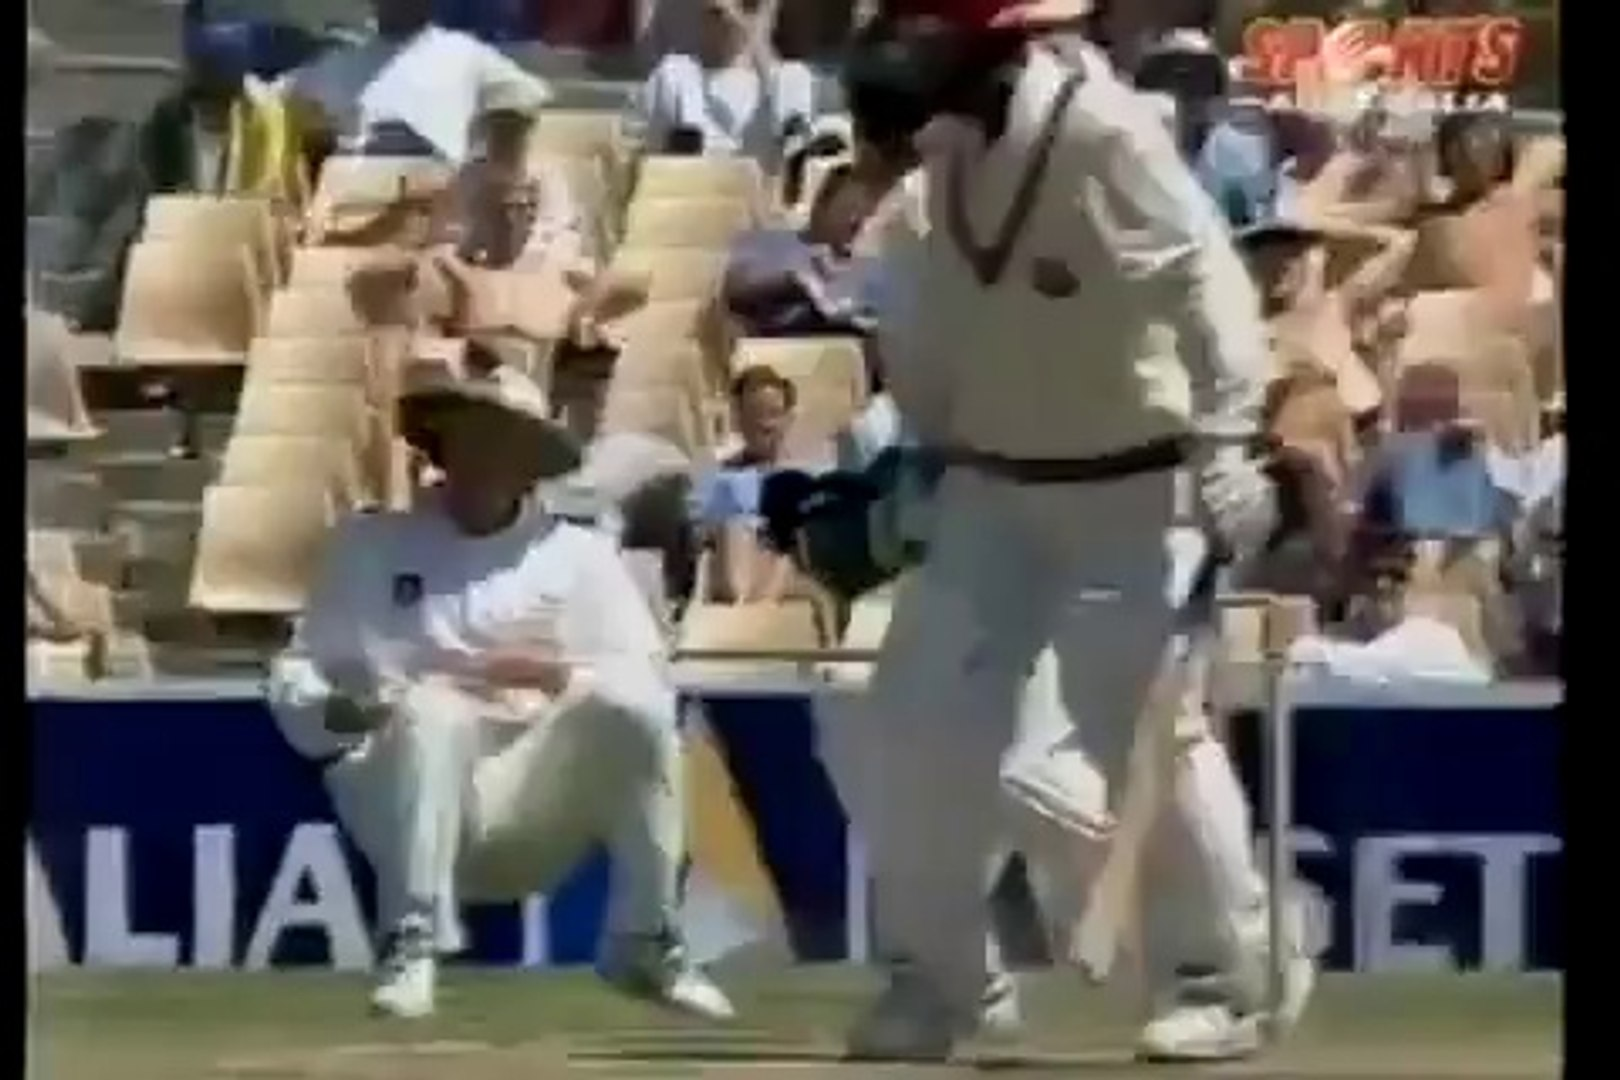 BEST CATCH EVER Mark Taylor takes a crazy catch off Michael Bevan's bowling